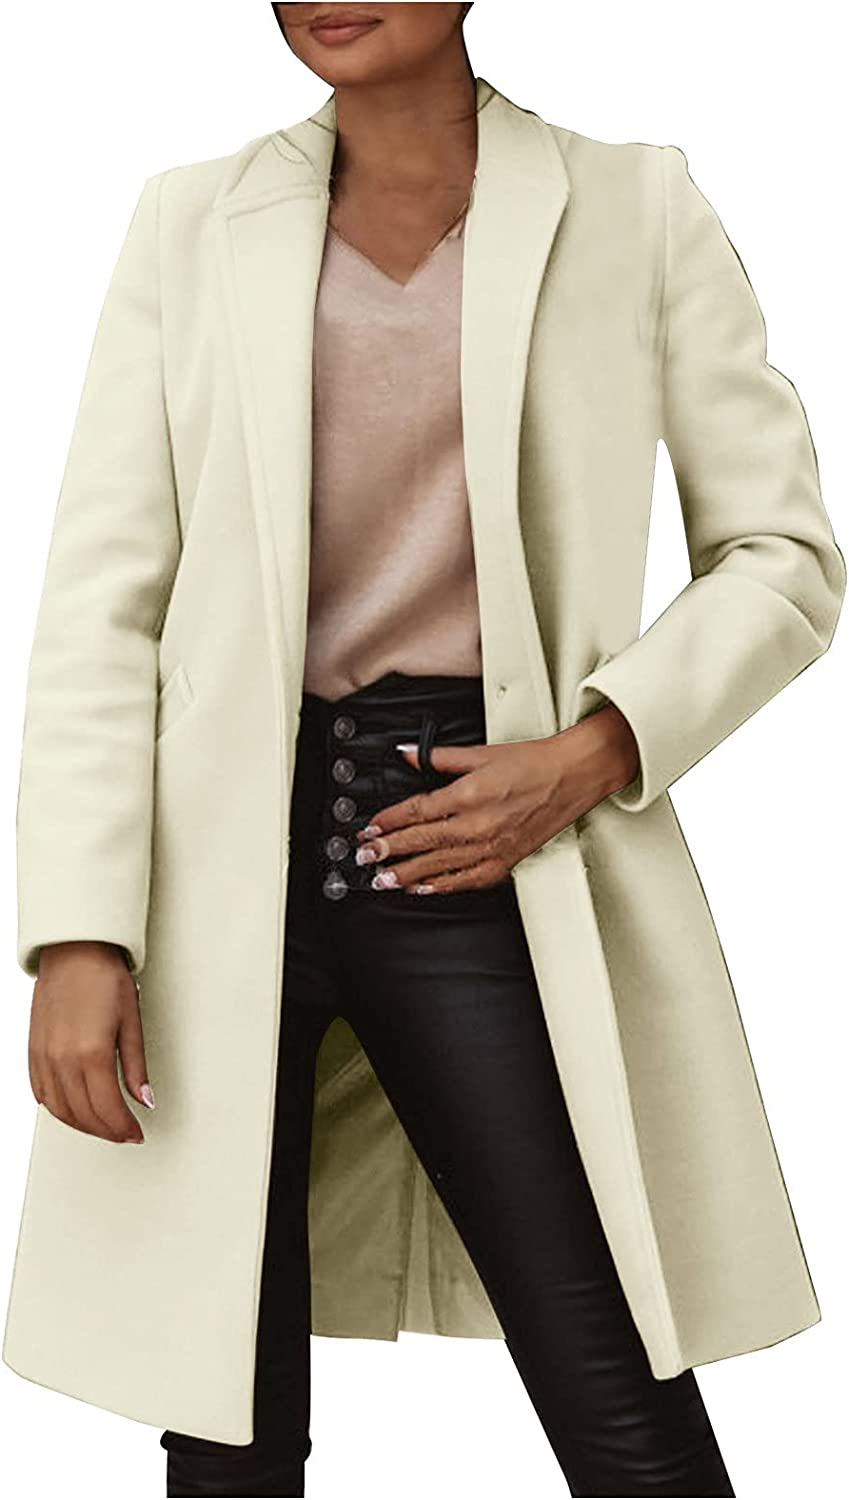 Xinantime Woolen Jacket for Women for Winter Double Breasted Trench Jacket Solid Color Lapel Overcoat Mid-Length Outwear